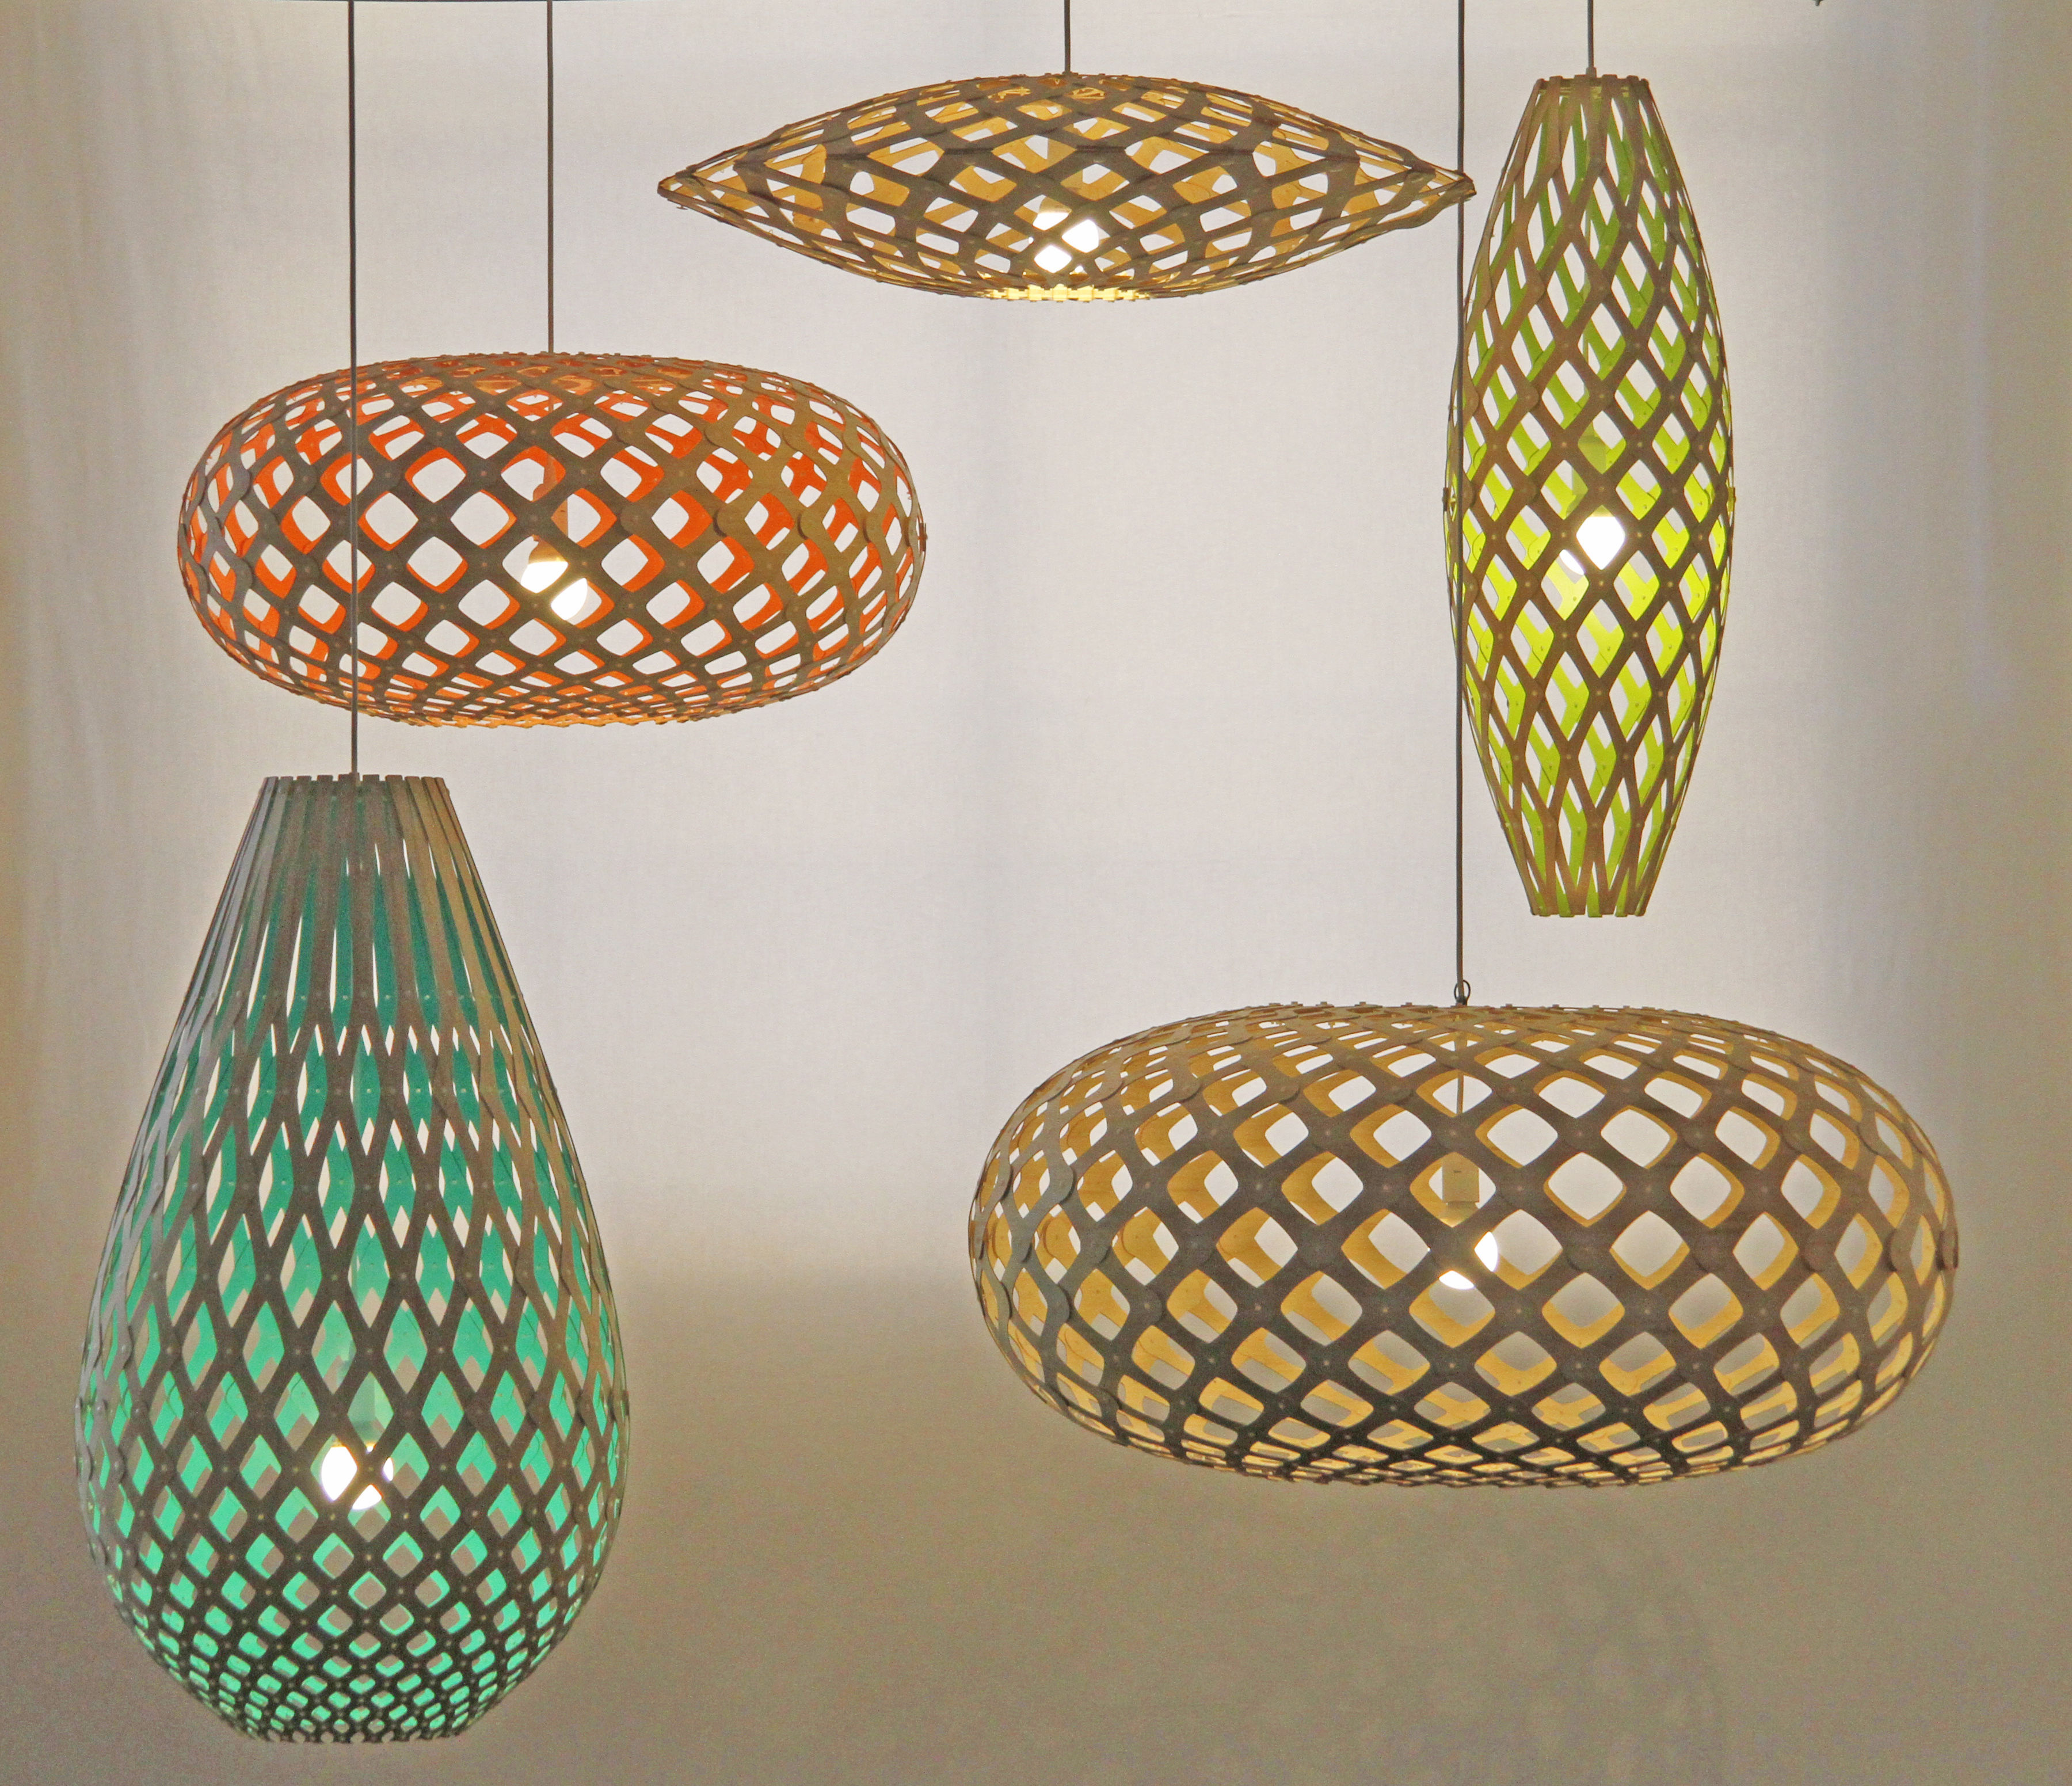 Home > Lighting > Suspensions > Kina Pendant - Ø 80 cm - Two-coloure...